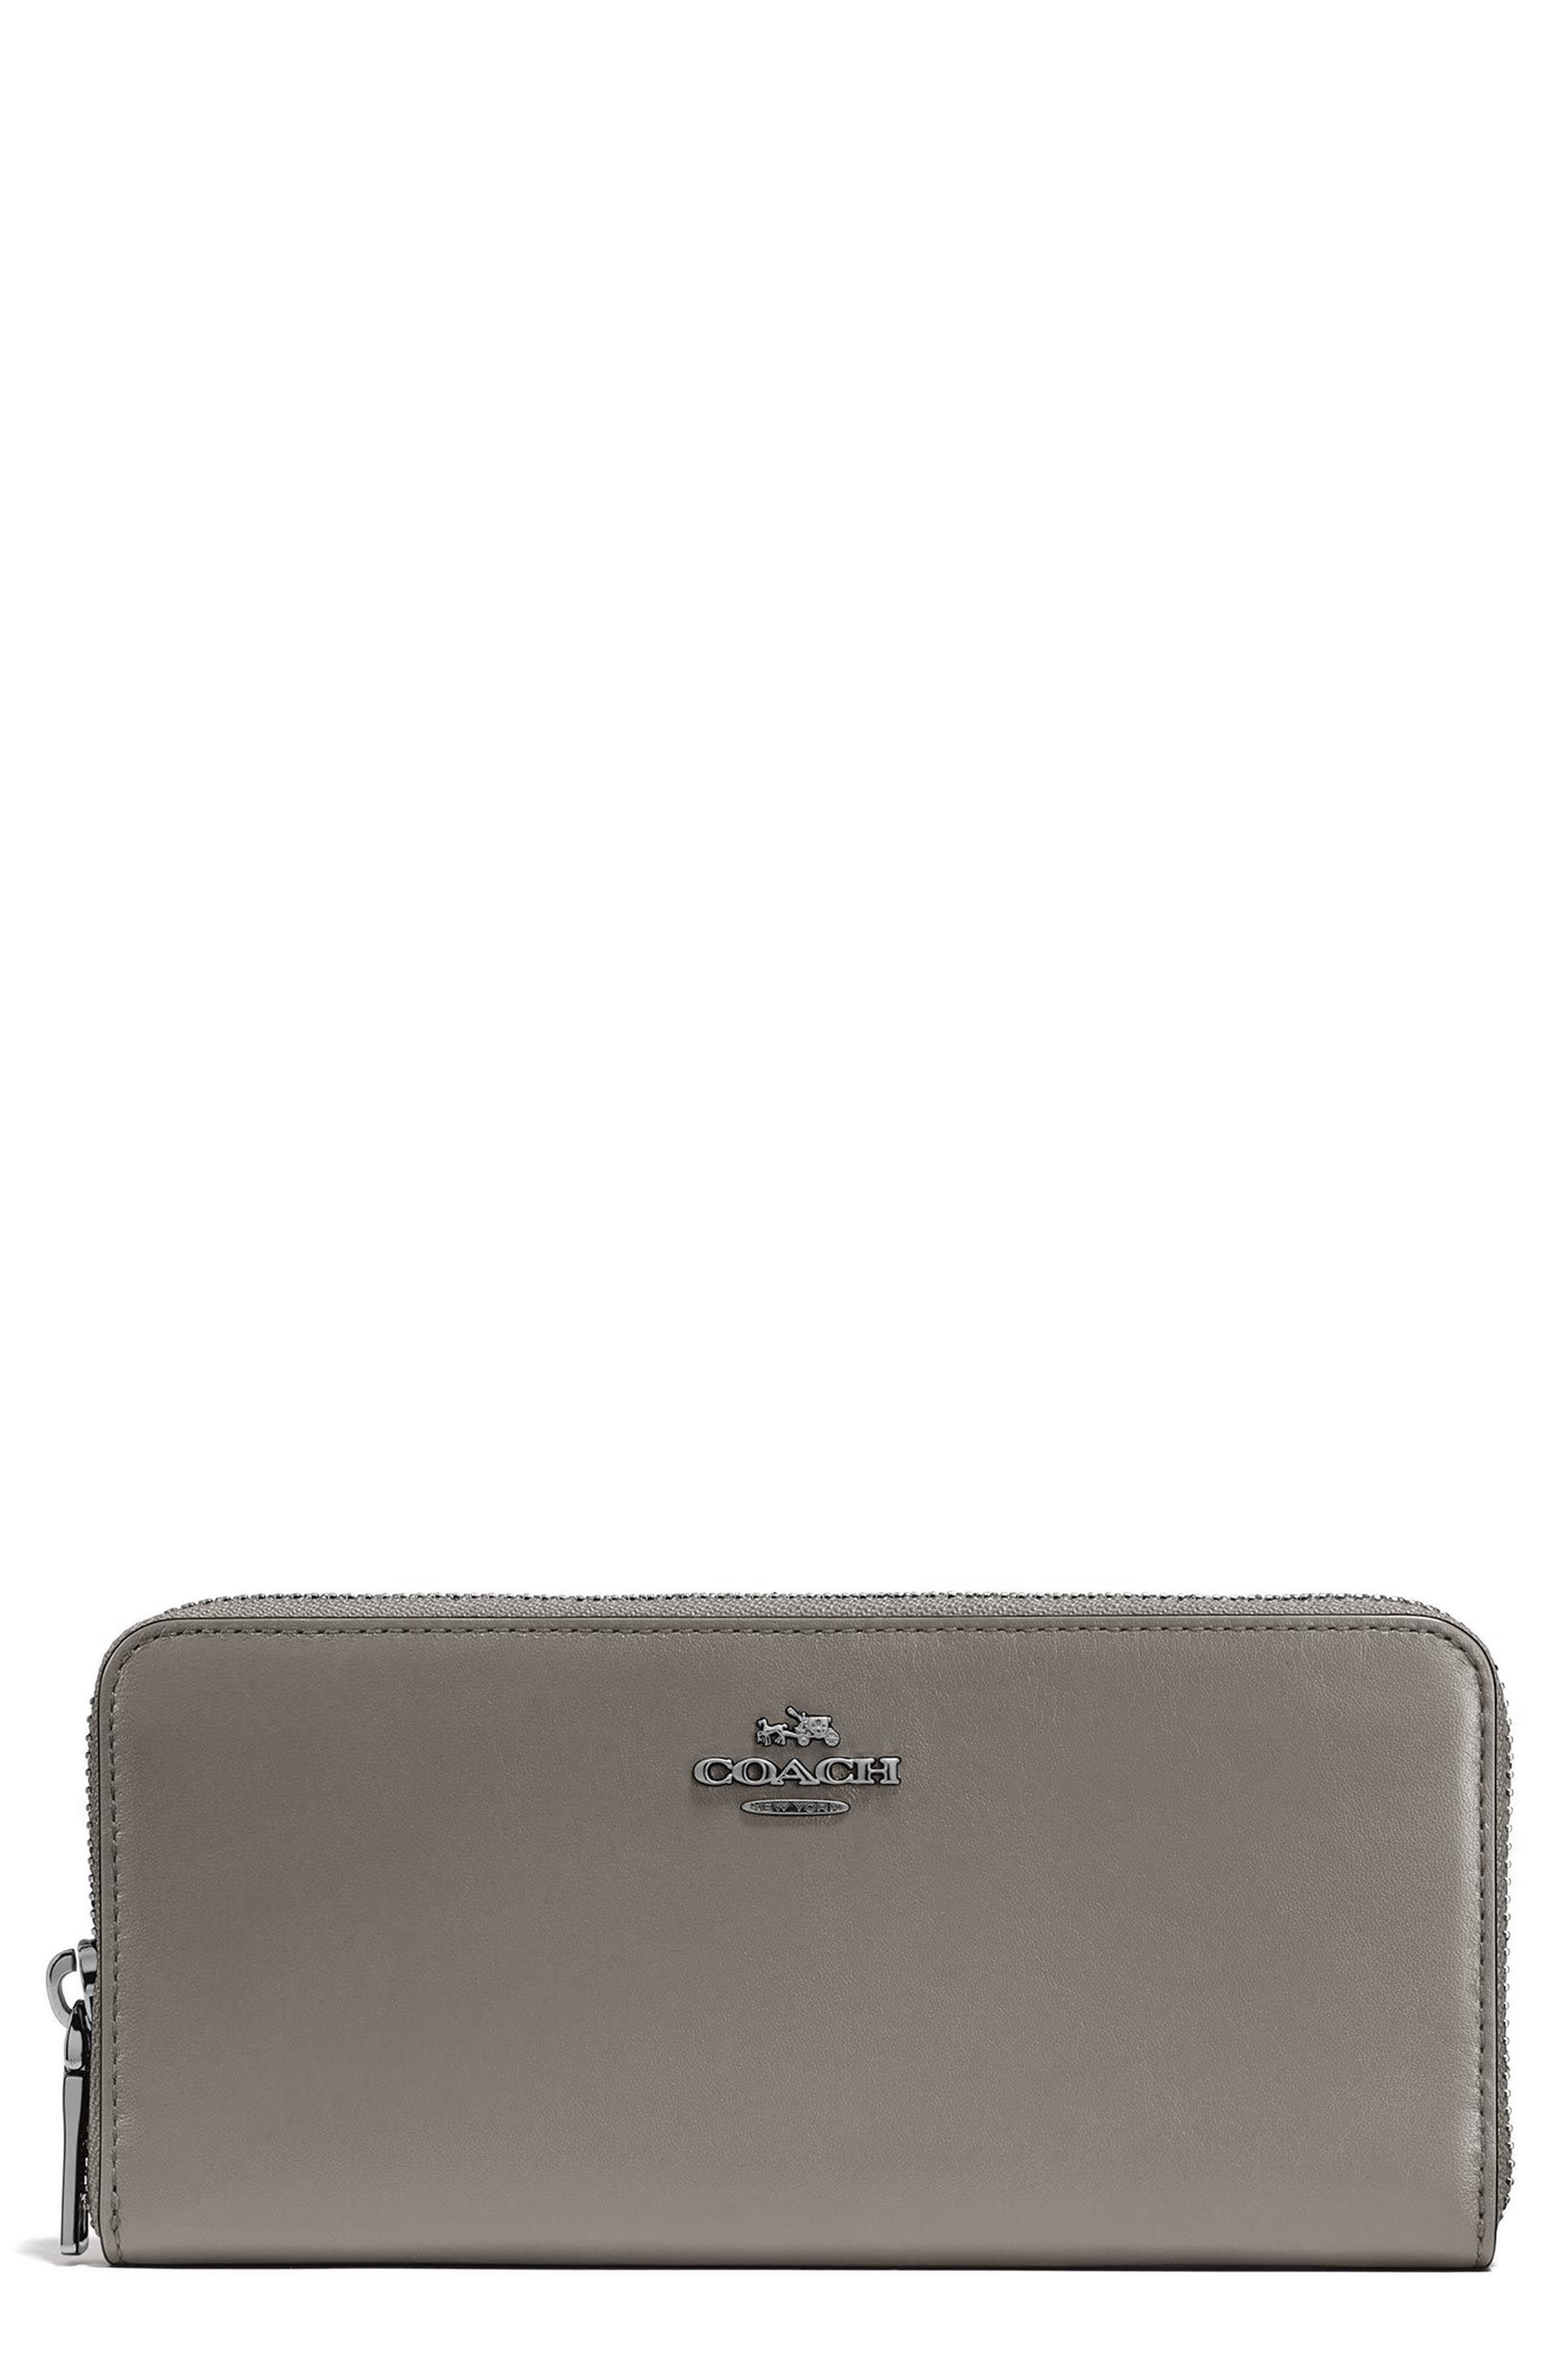 Accordion Zip Around Leather Wallet,                             Main thumbnail 1, color,                             Heather Grey